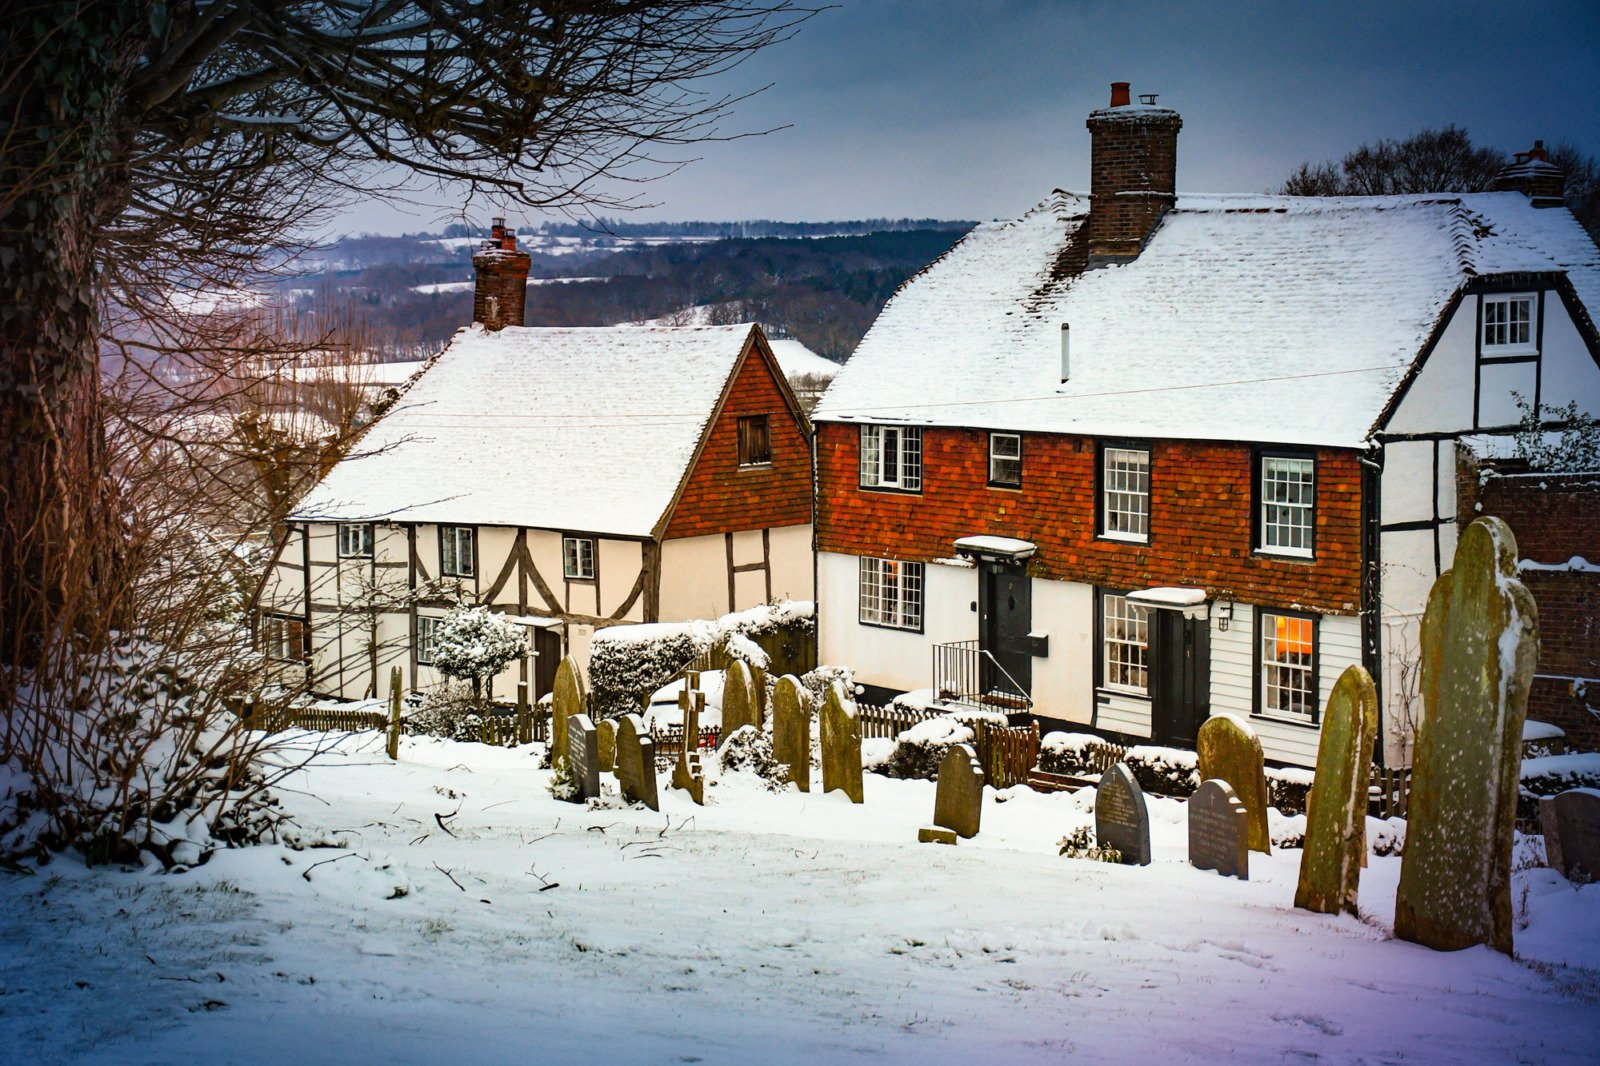 Burwash in the snow © French Moments